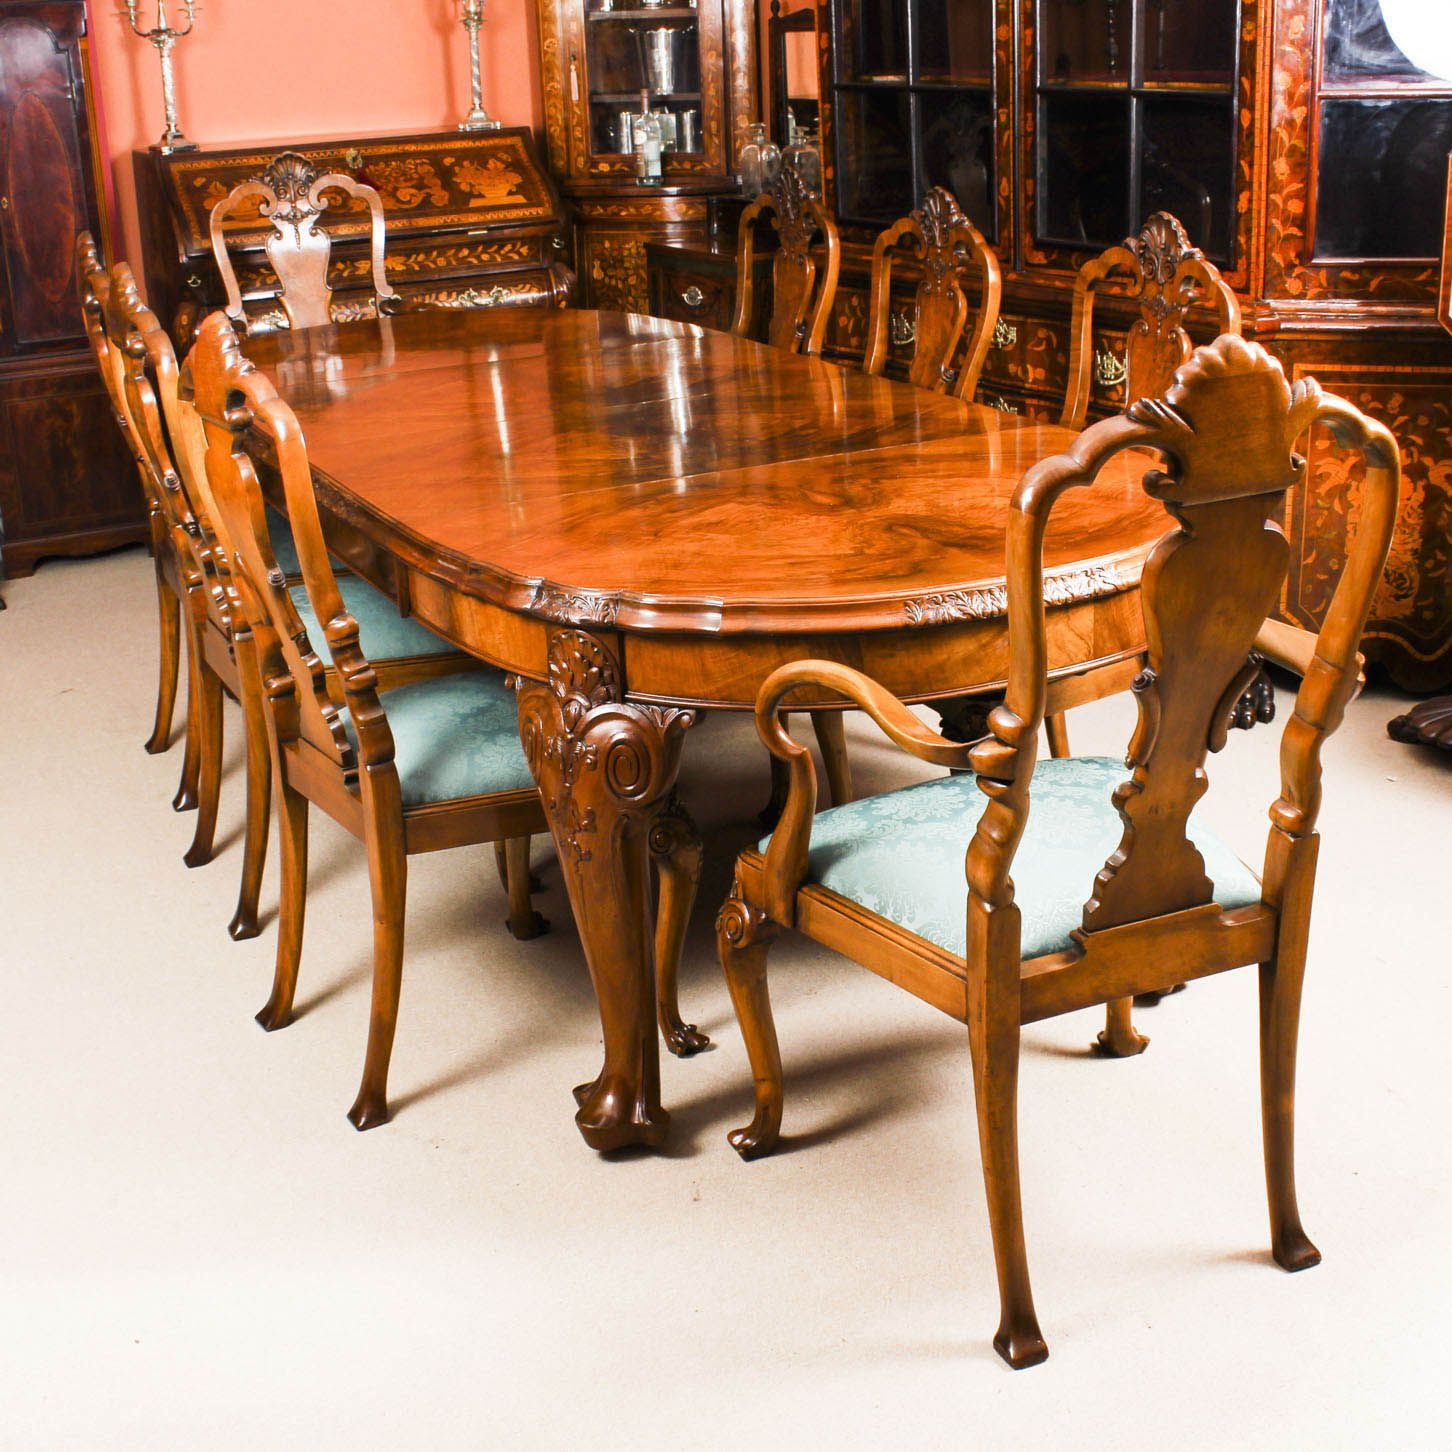 Antique Edwardian Queen Anne Revival Dining Table 8 Chairs C 1900 Antique Dining Tables Dining Table Dining Table Chairs